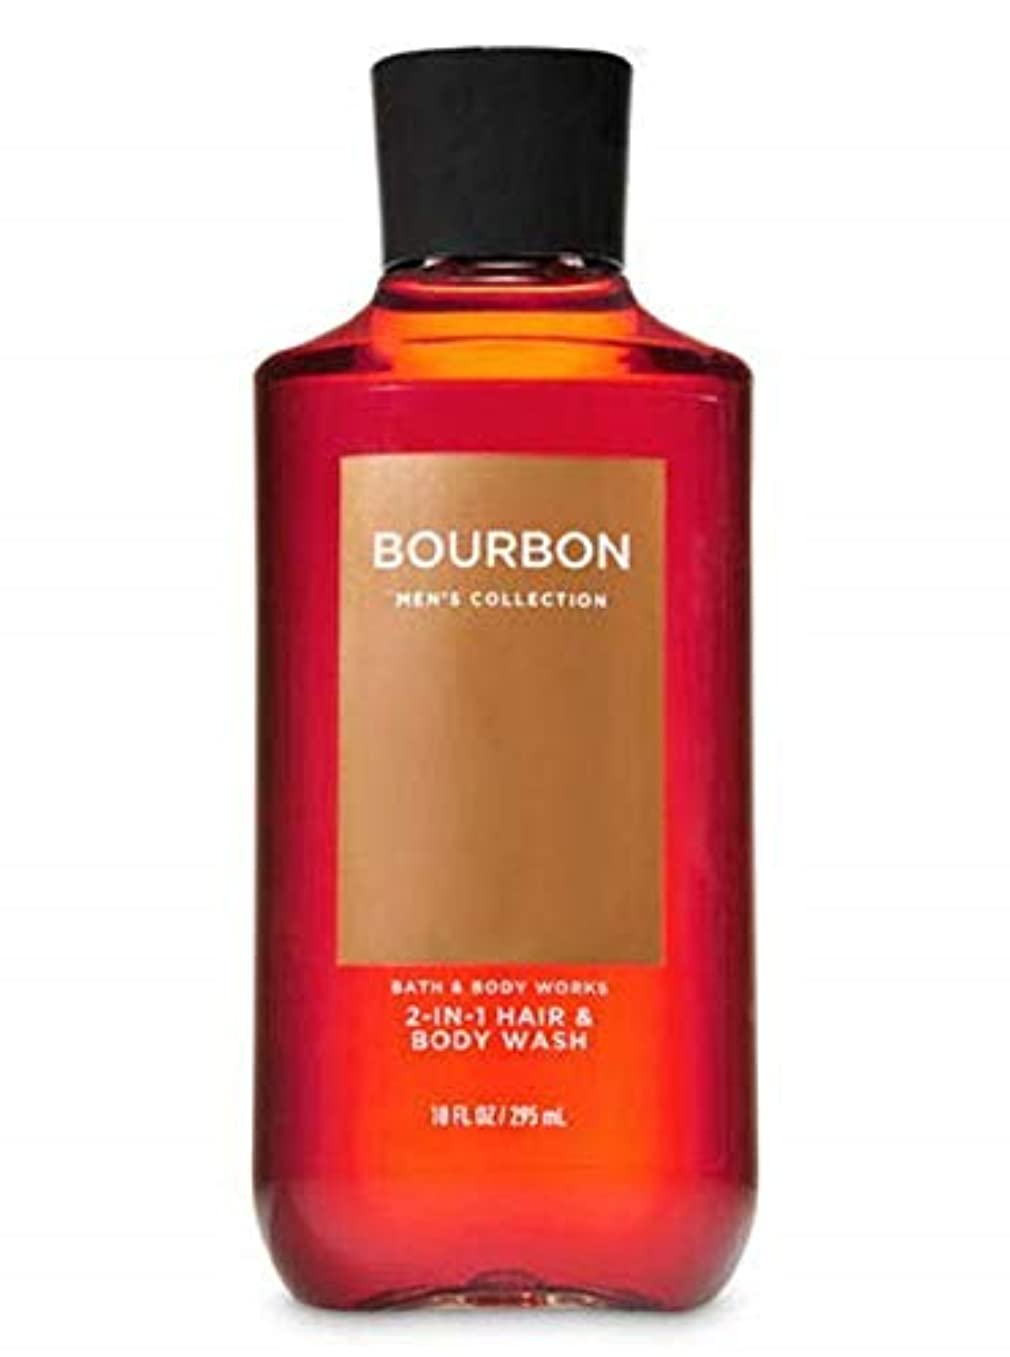 詩人粒子真っ逆さま【並行輸入品】Bath & Body Works Bourbon 2-in-1 Hair + Body Wash 295 mL